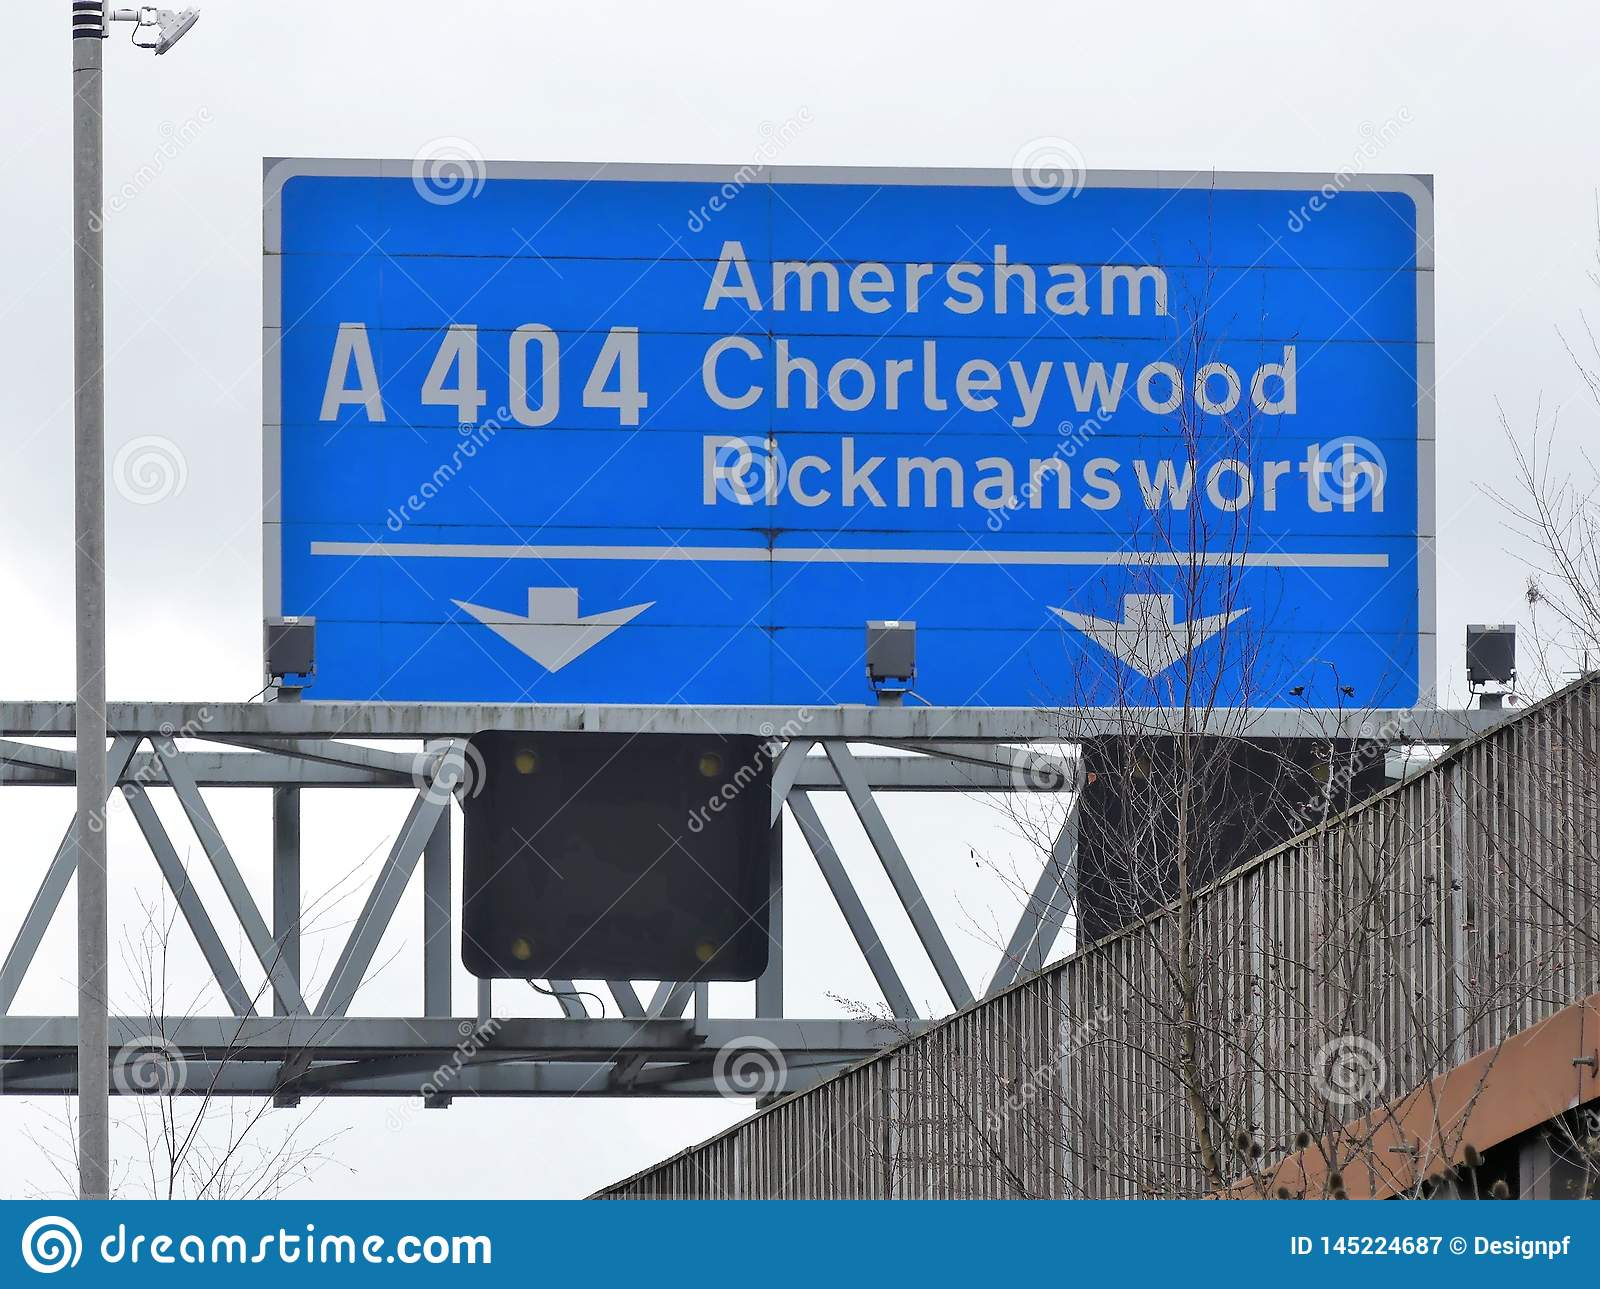 M25 Motorway exit sign at Junction 18 for Amersham, Chorleywood and Rickmansworth